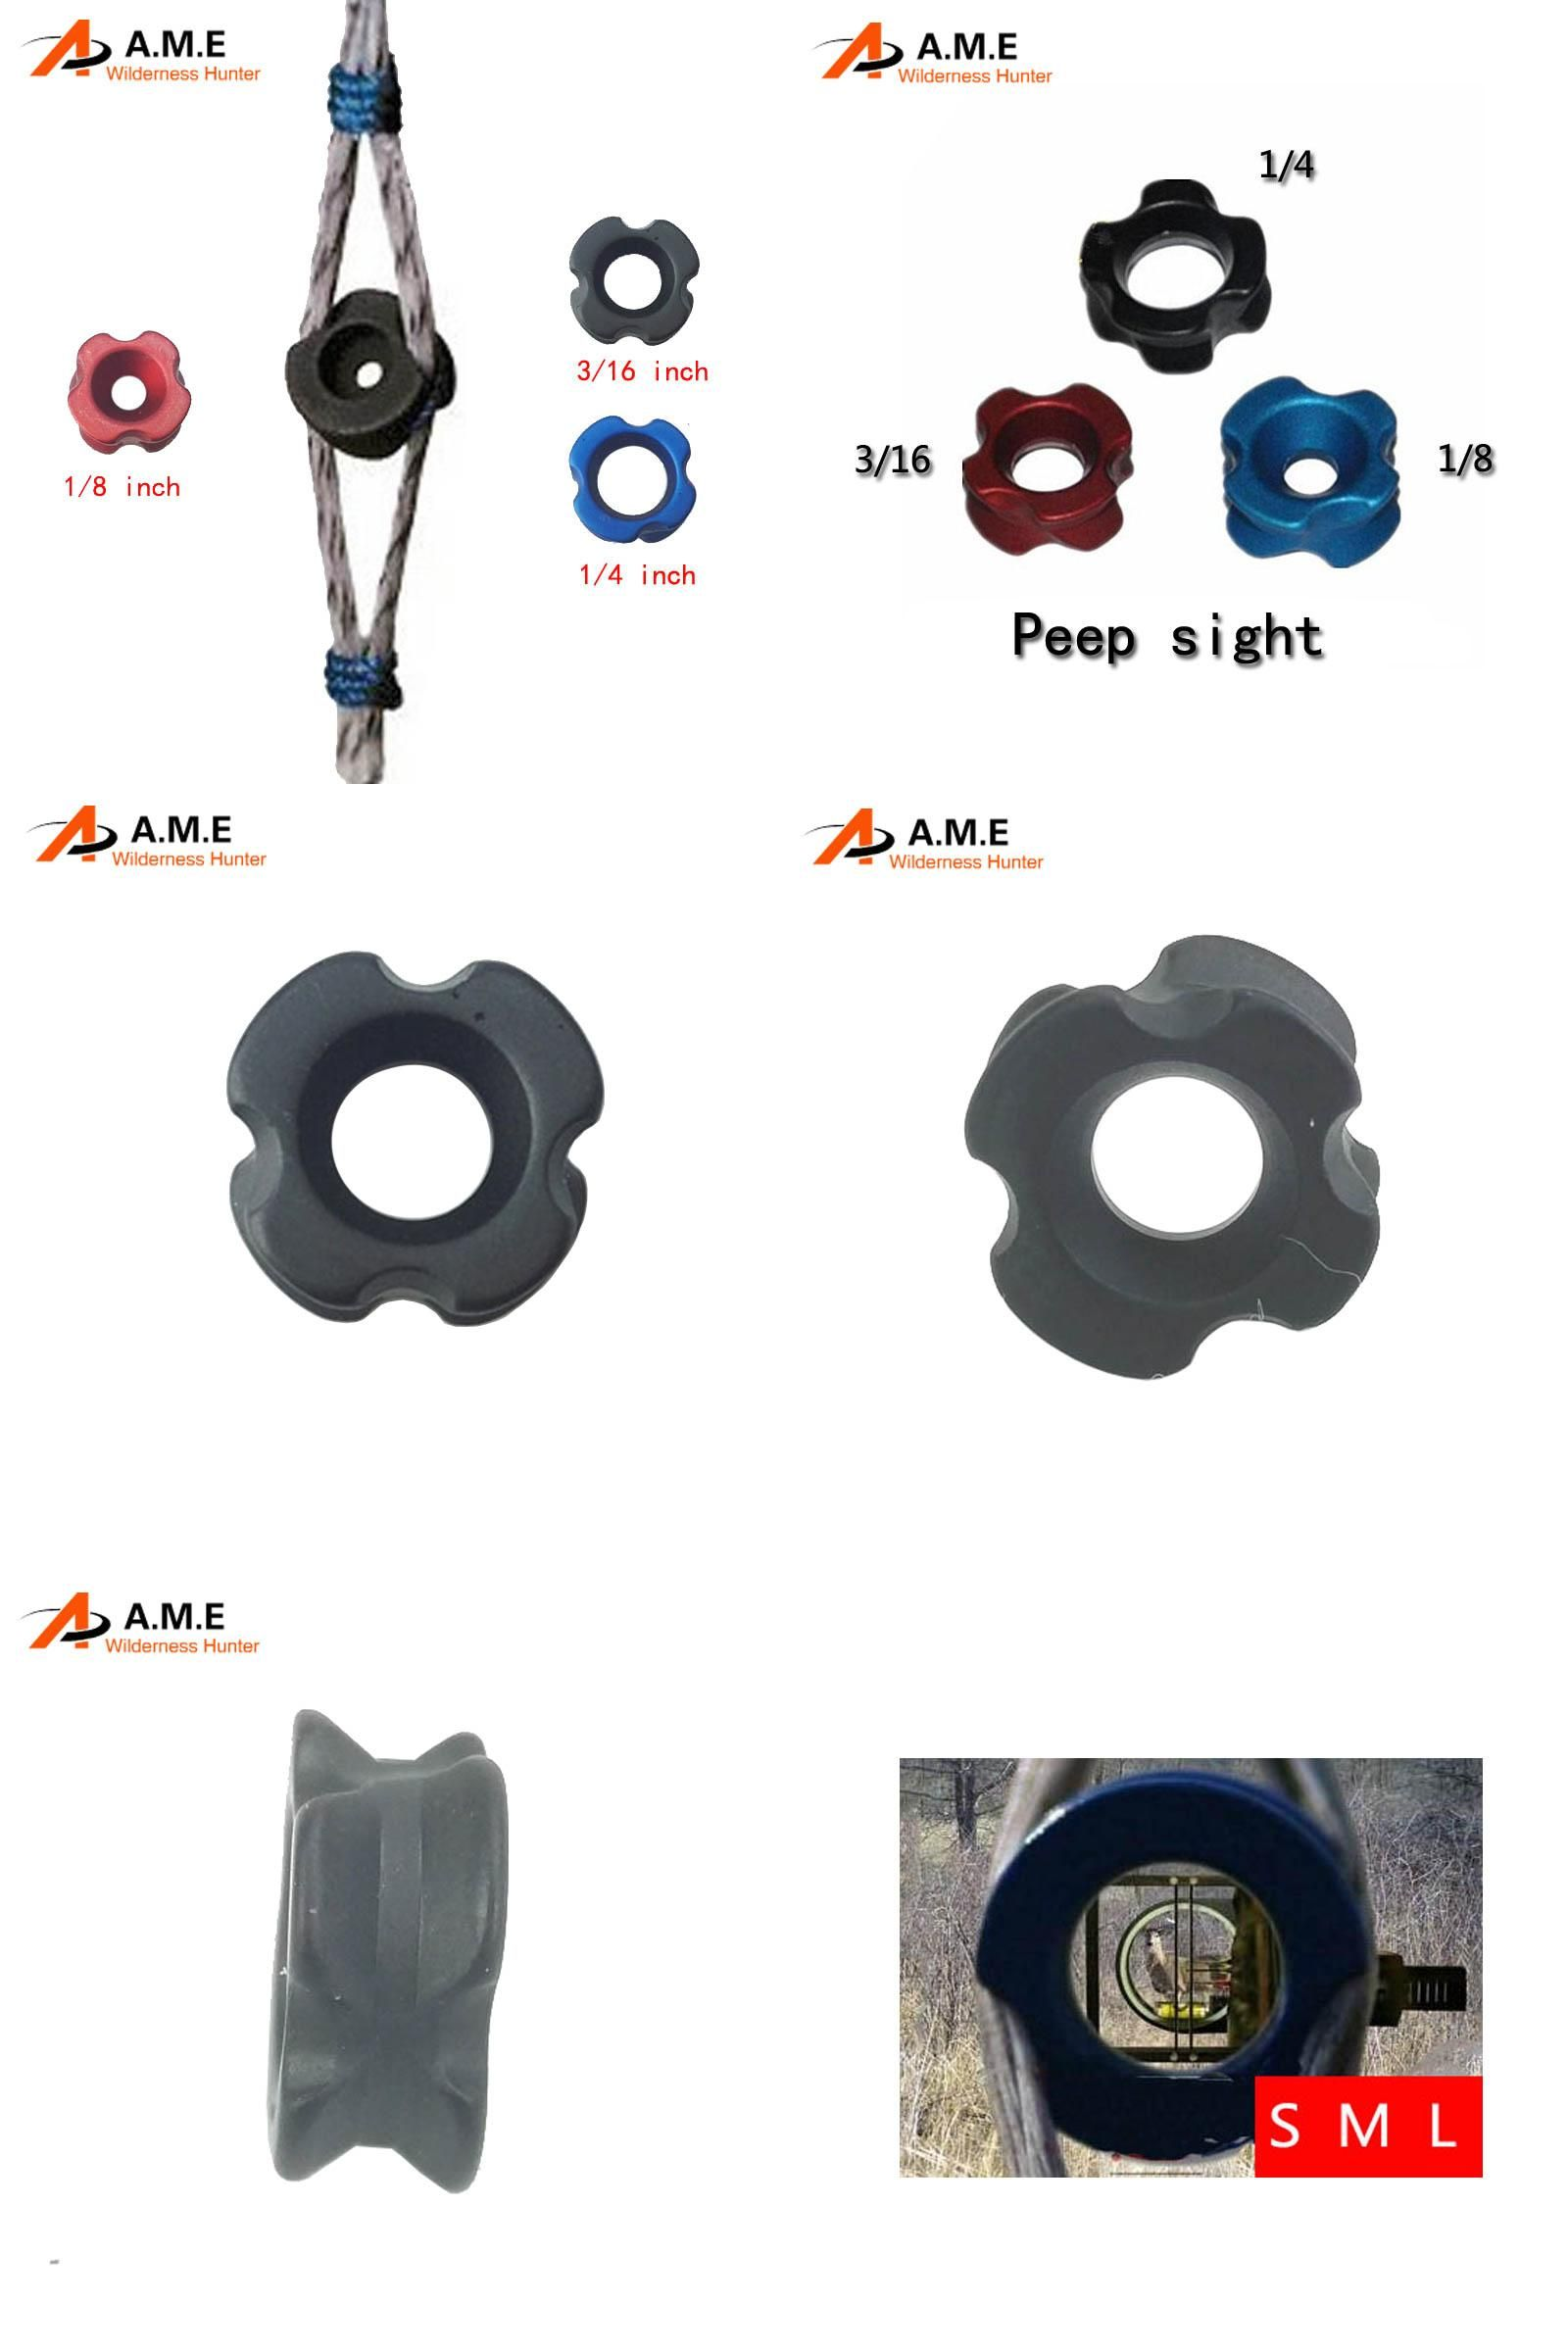 Archery Peep Sight Shooting Hunting Tactical Accessories 1//8/'/' For Compound Bow